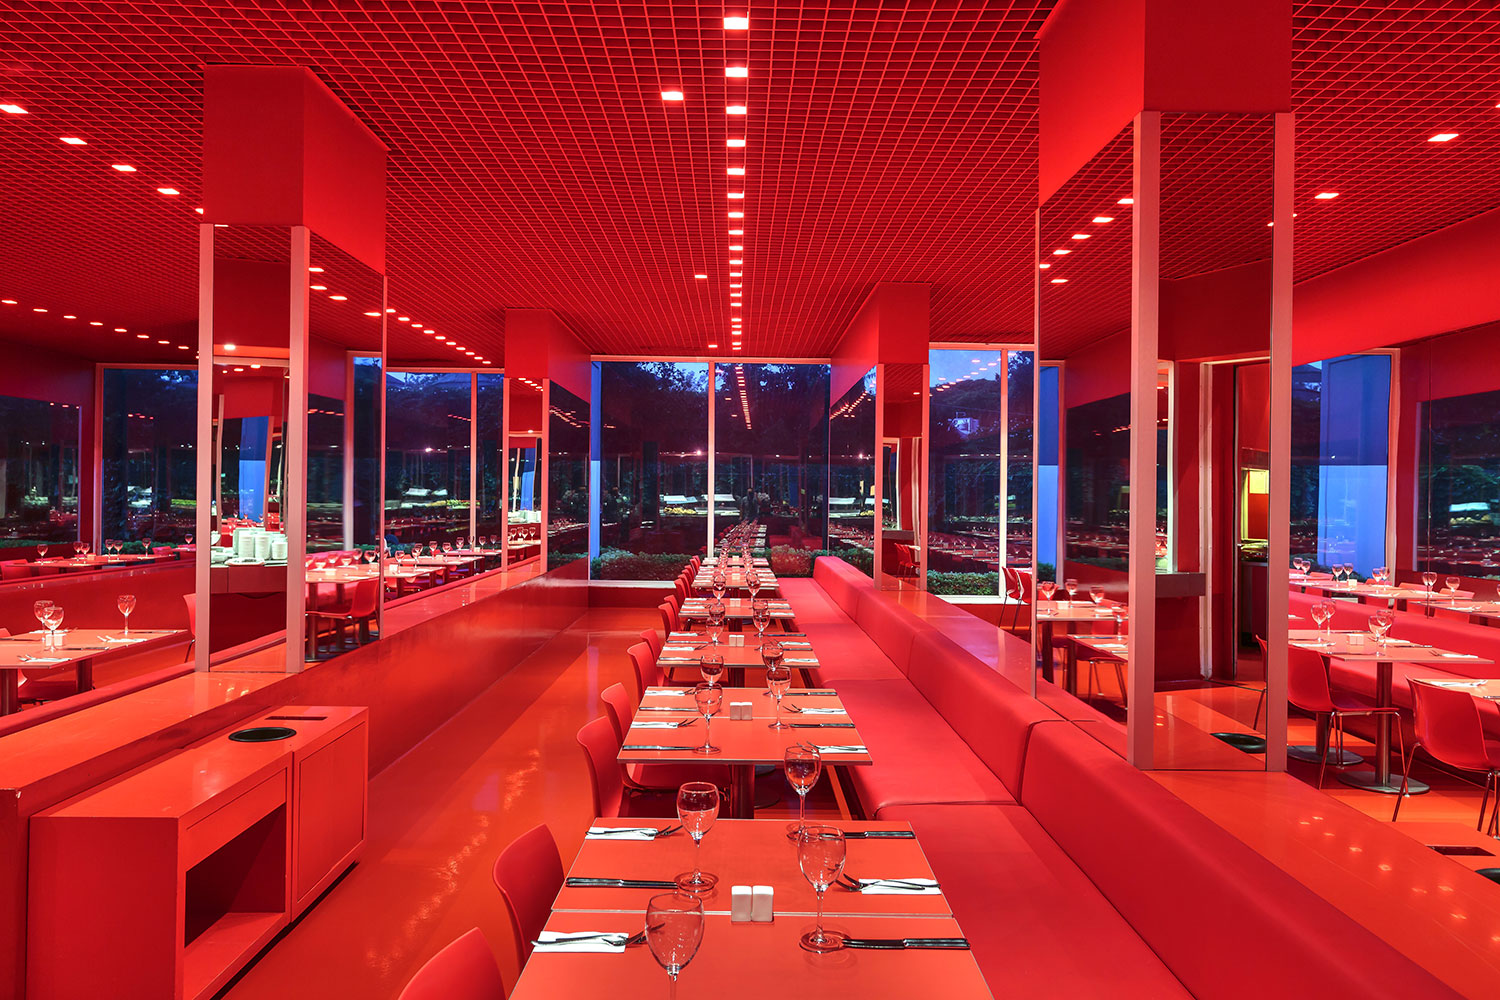 Image red_restaurant2.jpg